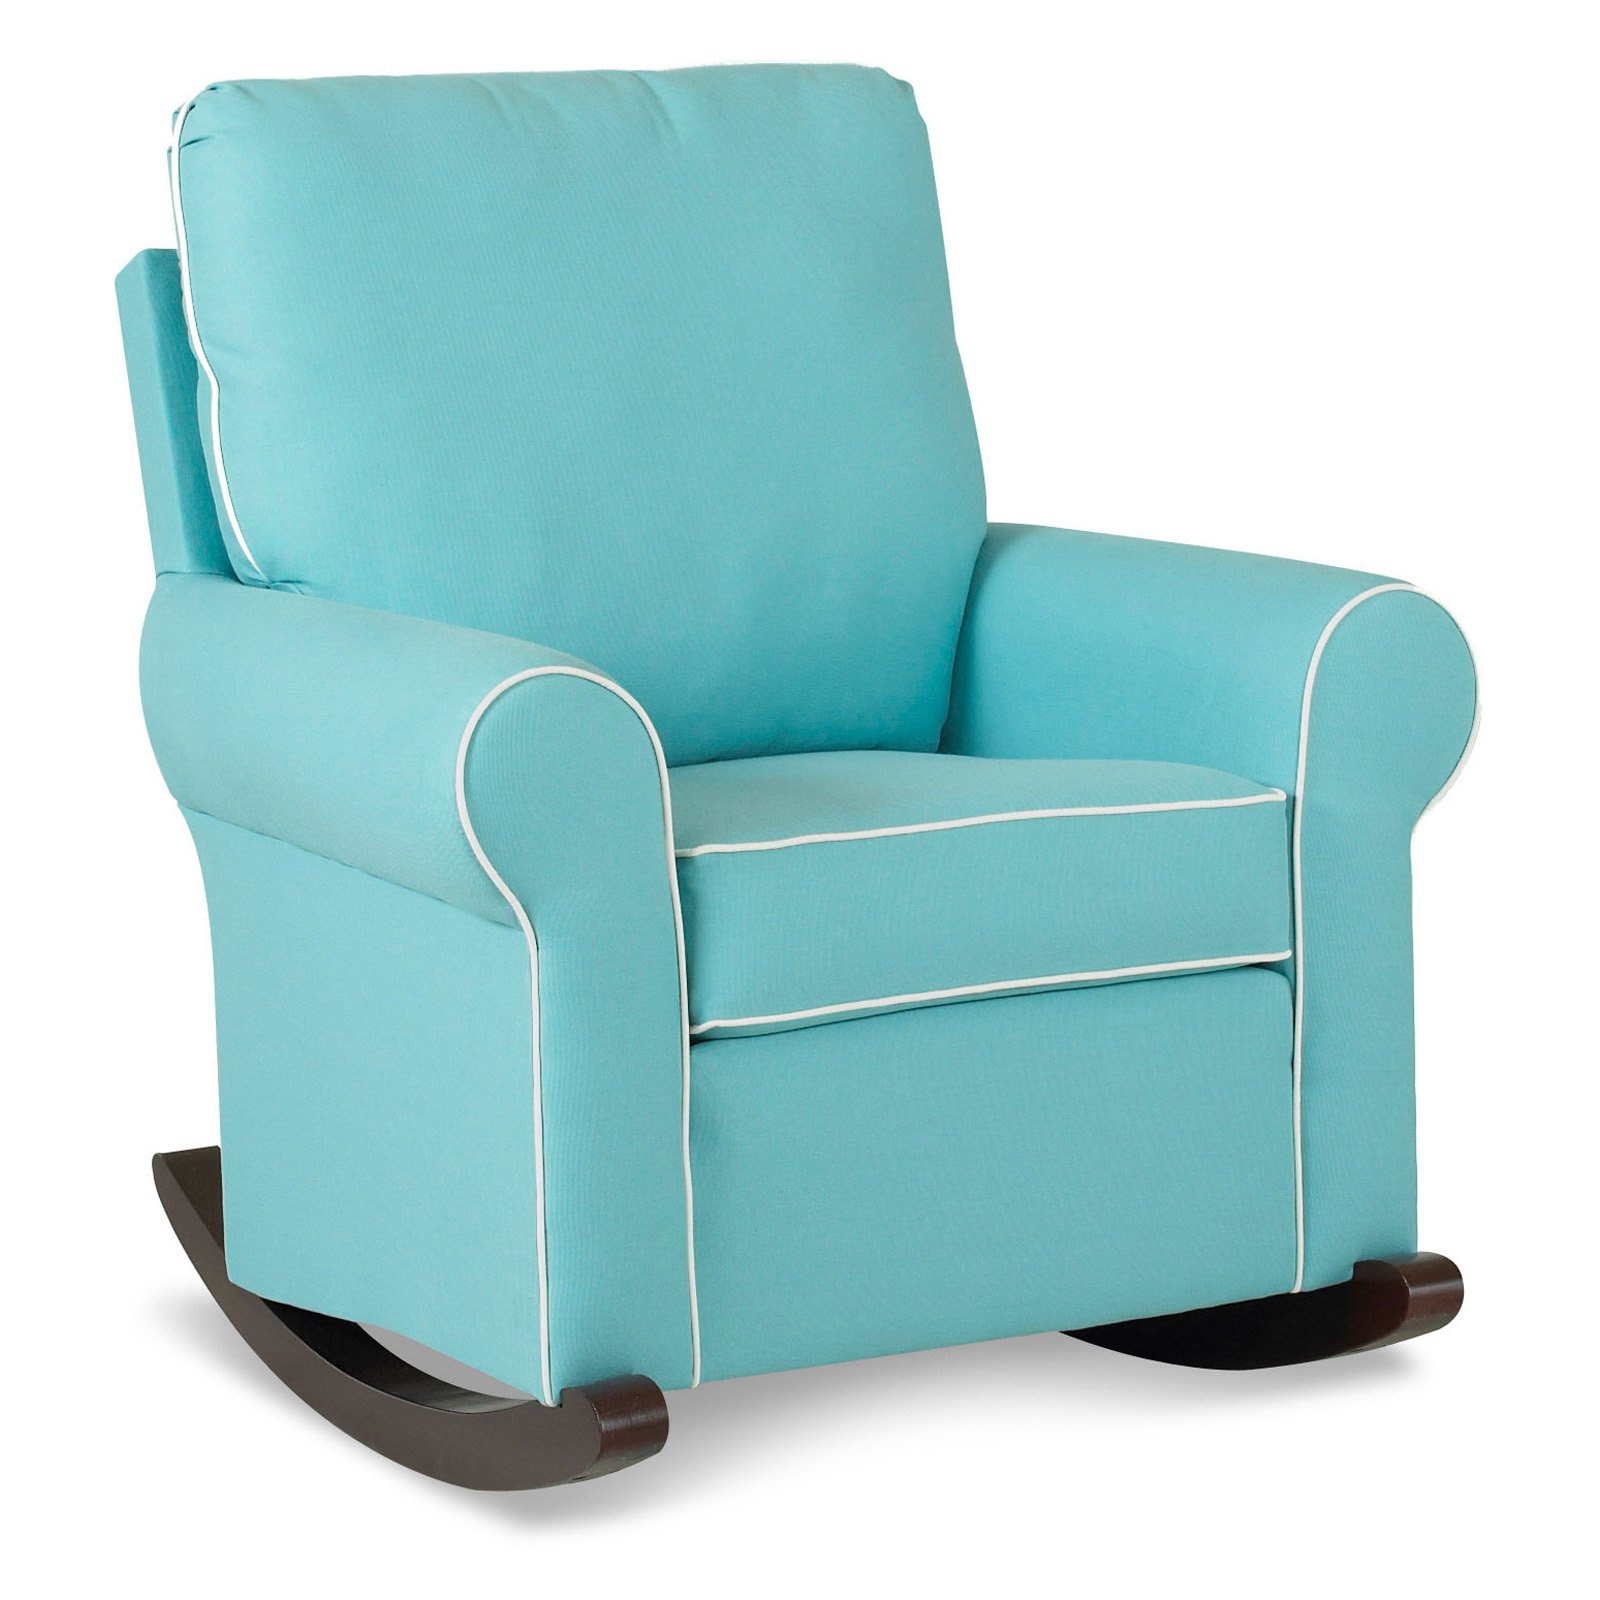 Furniture: Beautiful Upholstered Rocking Chair For Home In Modern Blue Fabric Rocking Arm Chairs (View 15 of 20)